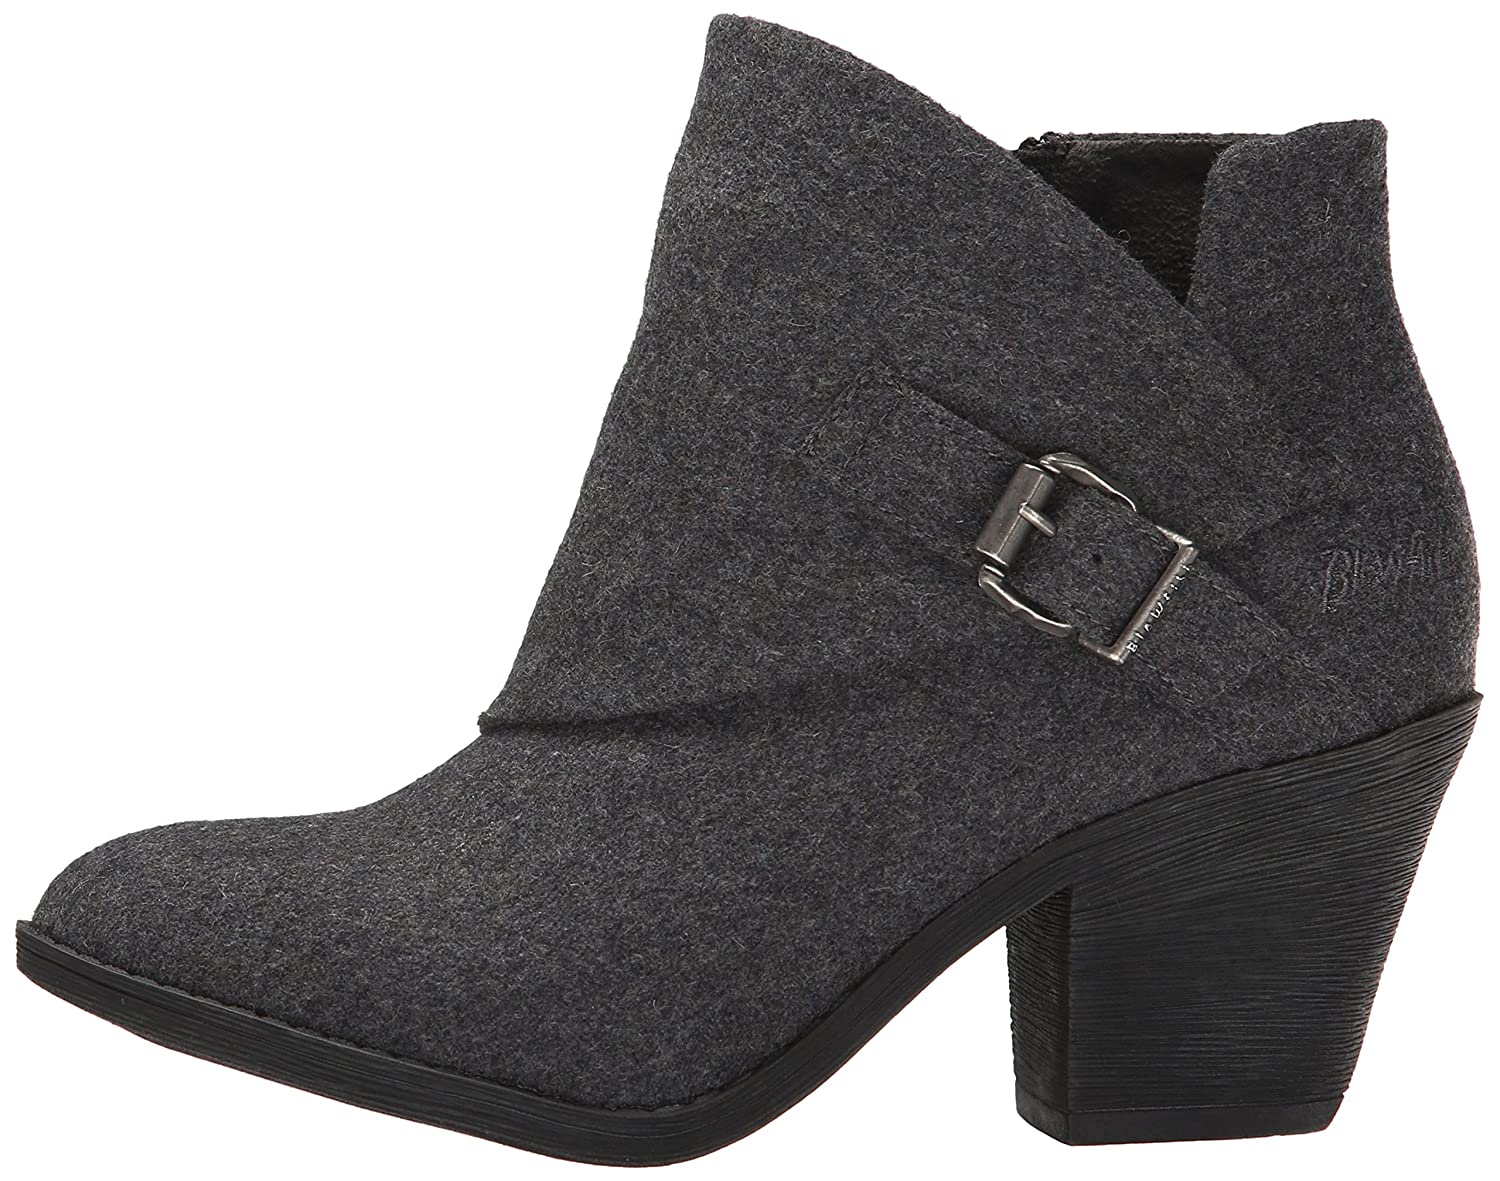 Blowfish Women's Suba Ankle Tone Bootie B00RYRH8R0 7 M US|Grey Tone Ankle Flannel 9958ea